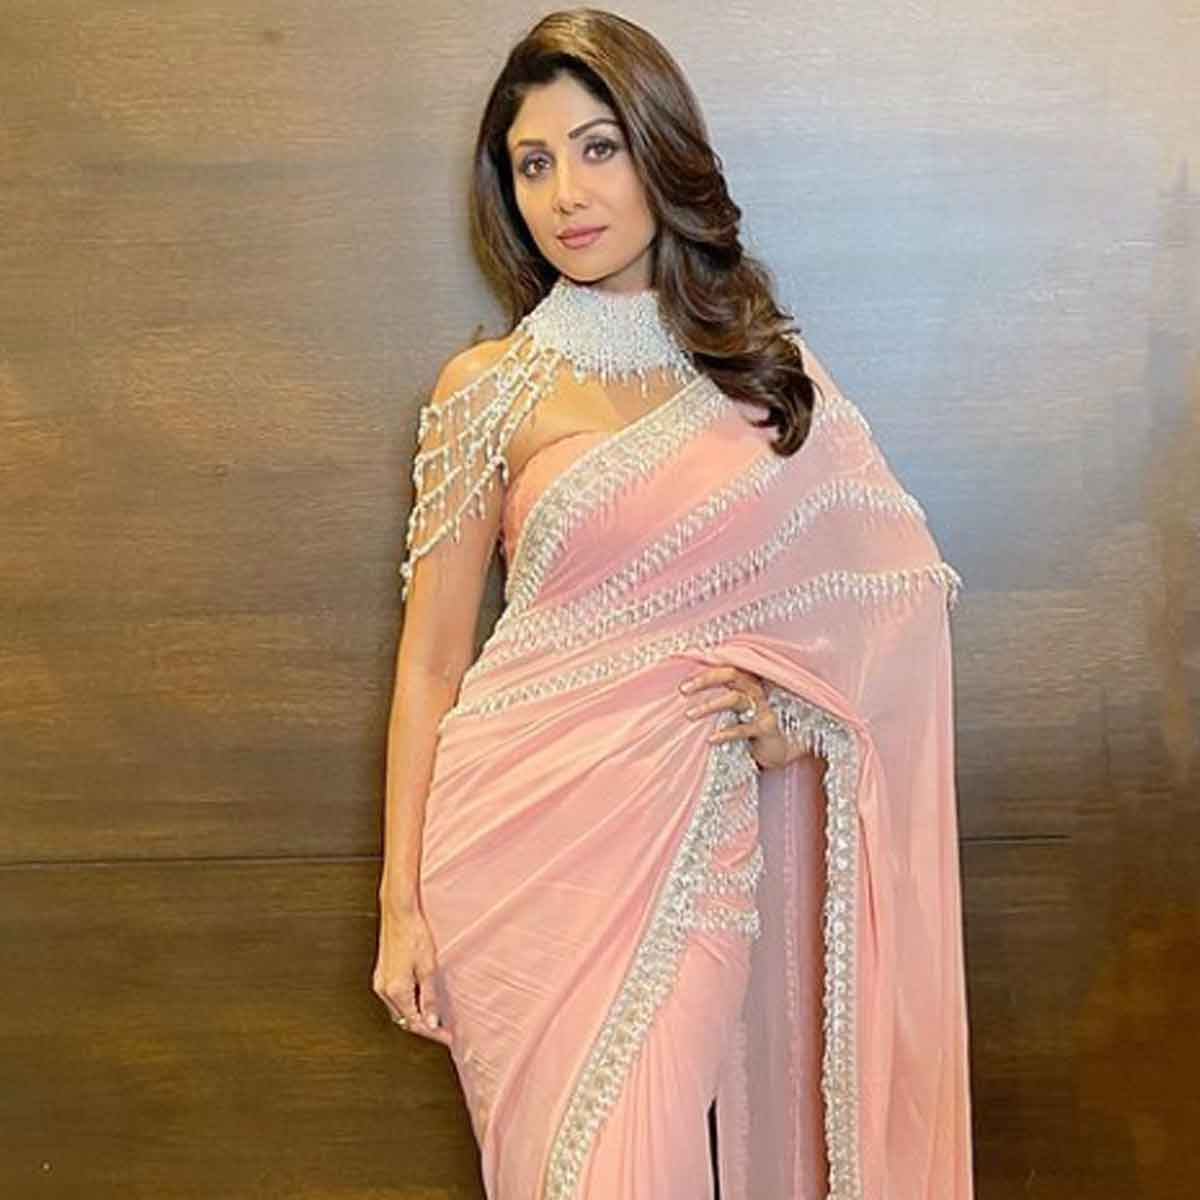 When Shilpa Shetty looked no less than a royal as she stunned in a pastel pink saree